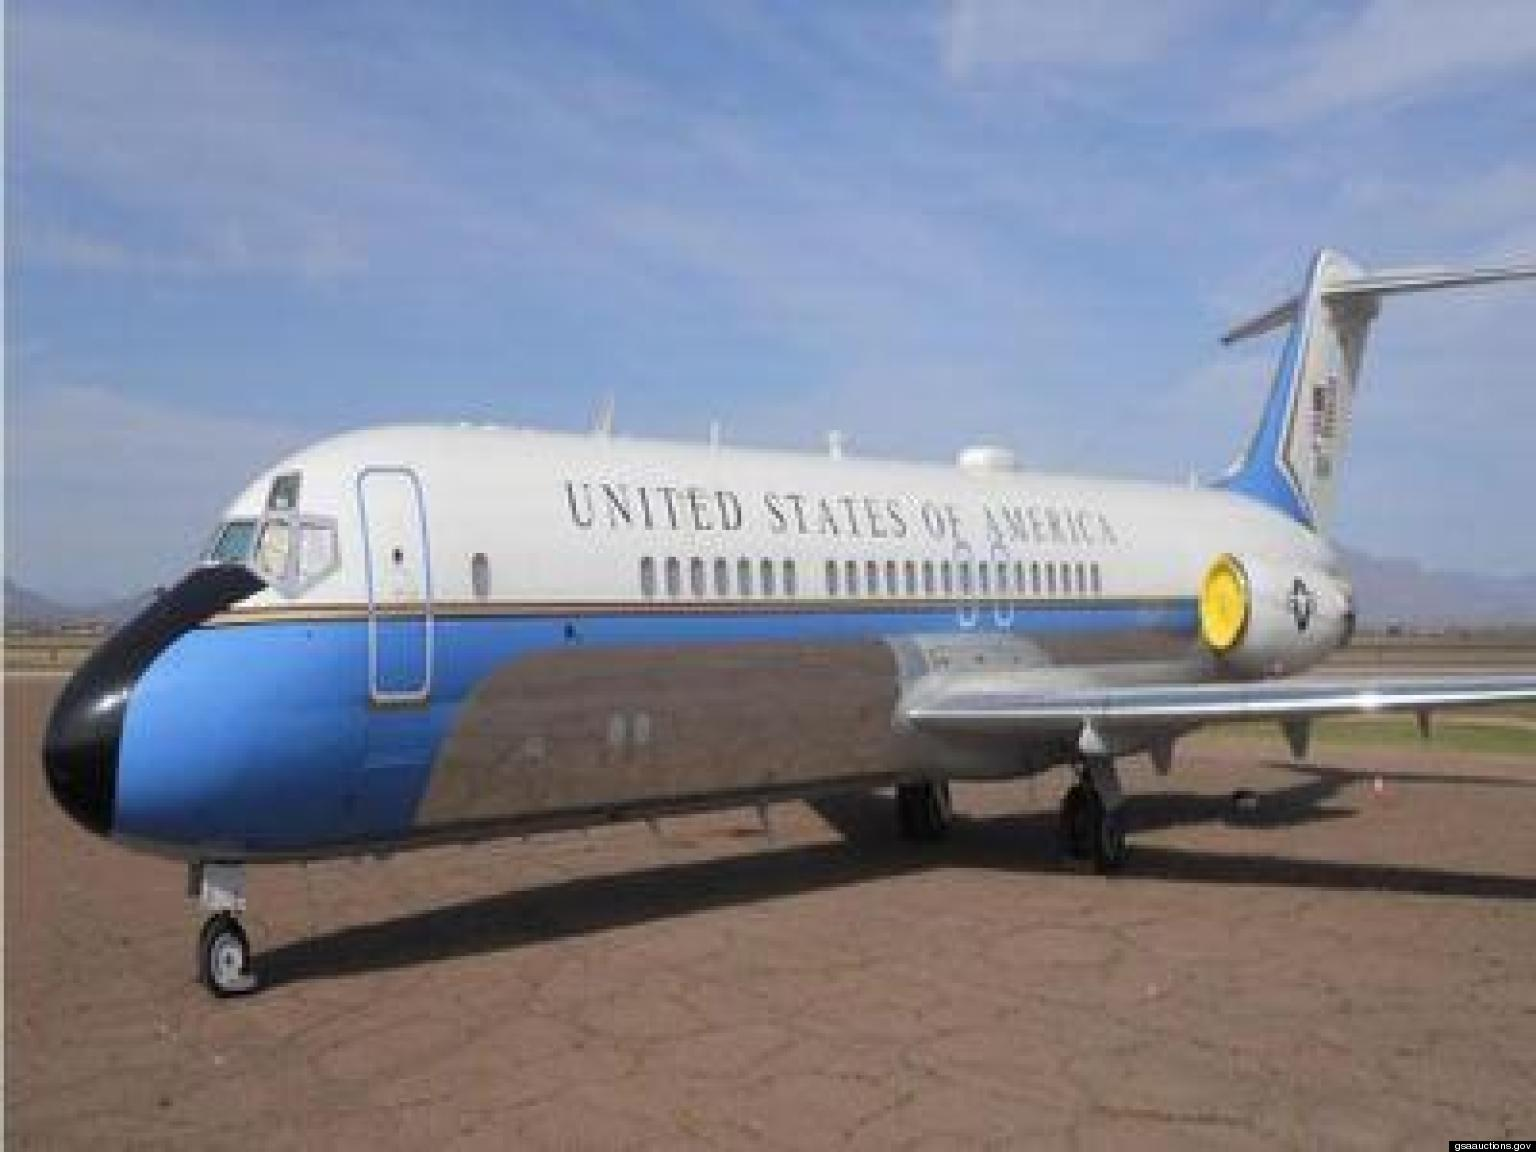 air pressor sales dual battery selector switch wiring diagram force one for sale government selling former